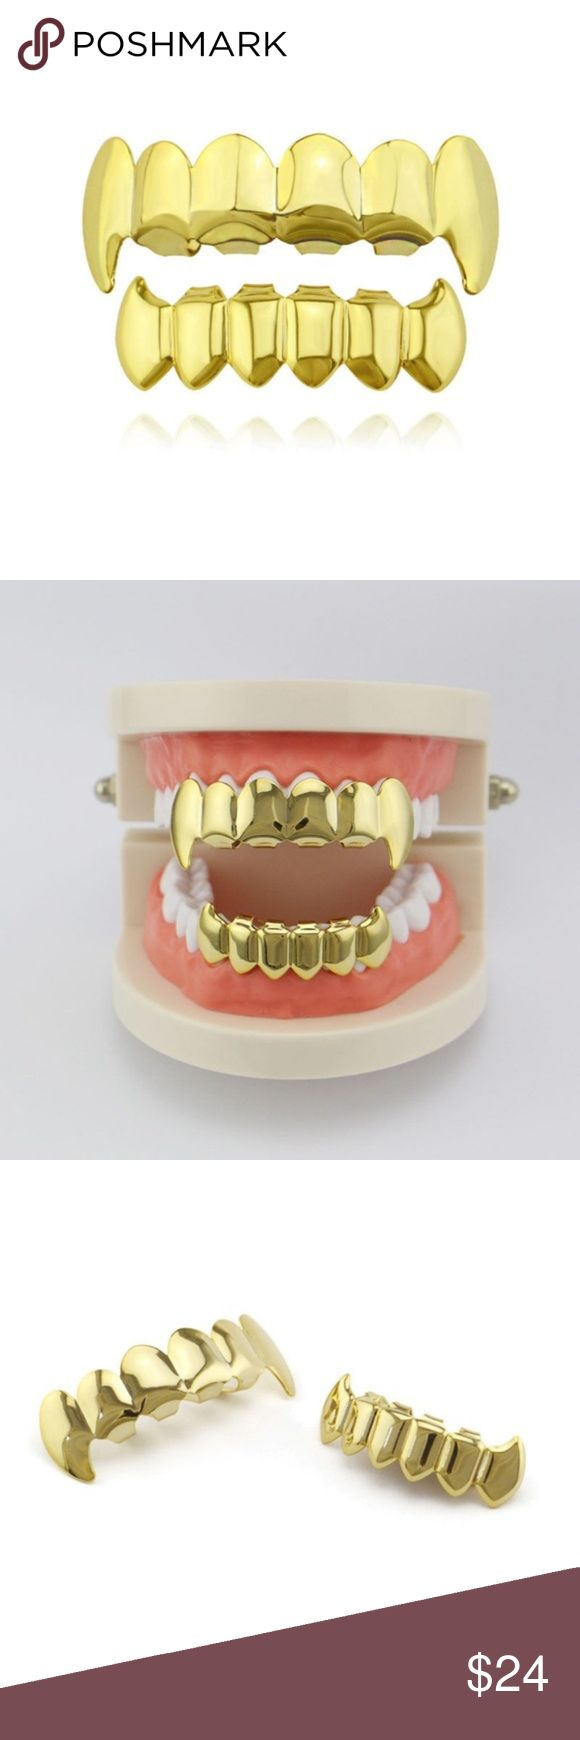 """14k Gold Plated Fangs Grillz Set Hip Hop Jewelry PrimoBling.com """"Quality Hip Hop Jewelry """"  Item Description:  14k 3x Gold Plated Fangs Hip Hop Teeth Grillz Top & Bottom Grill Set  Hip Hop Grillz Have been around for a very long time but are now becoming even more of a trend in the fashion world as well as the urban community   Item Specifics:  100% Brand new & High quality Material: Brass Color:14k Gold Plated  Size: One Size Fits All Package Includes: 1 pair of 6 row Grillz (Top and…"""